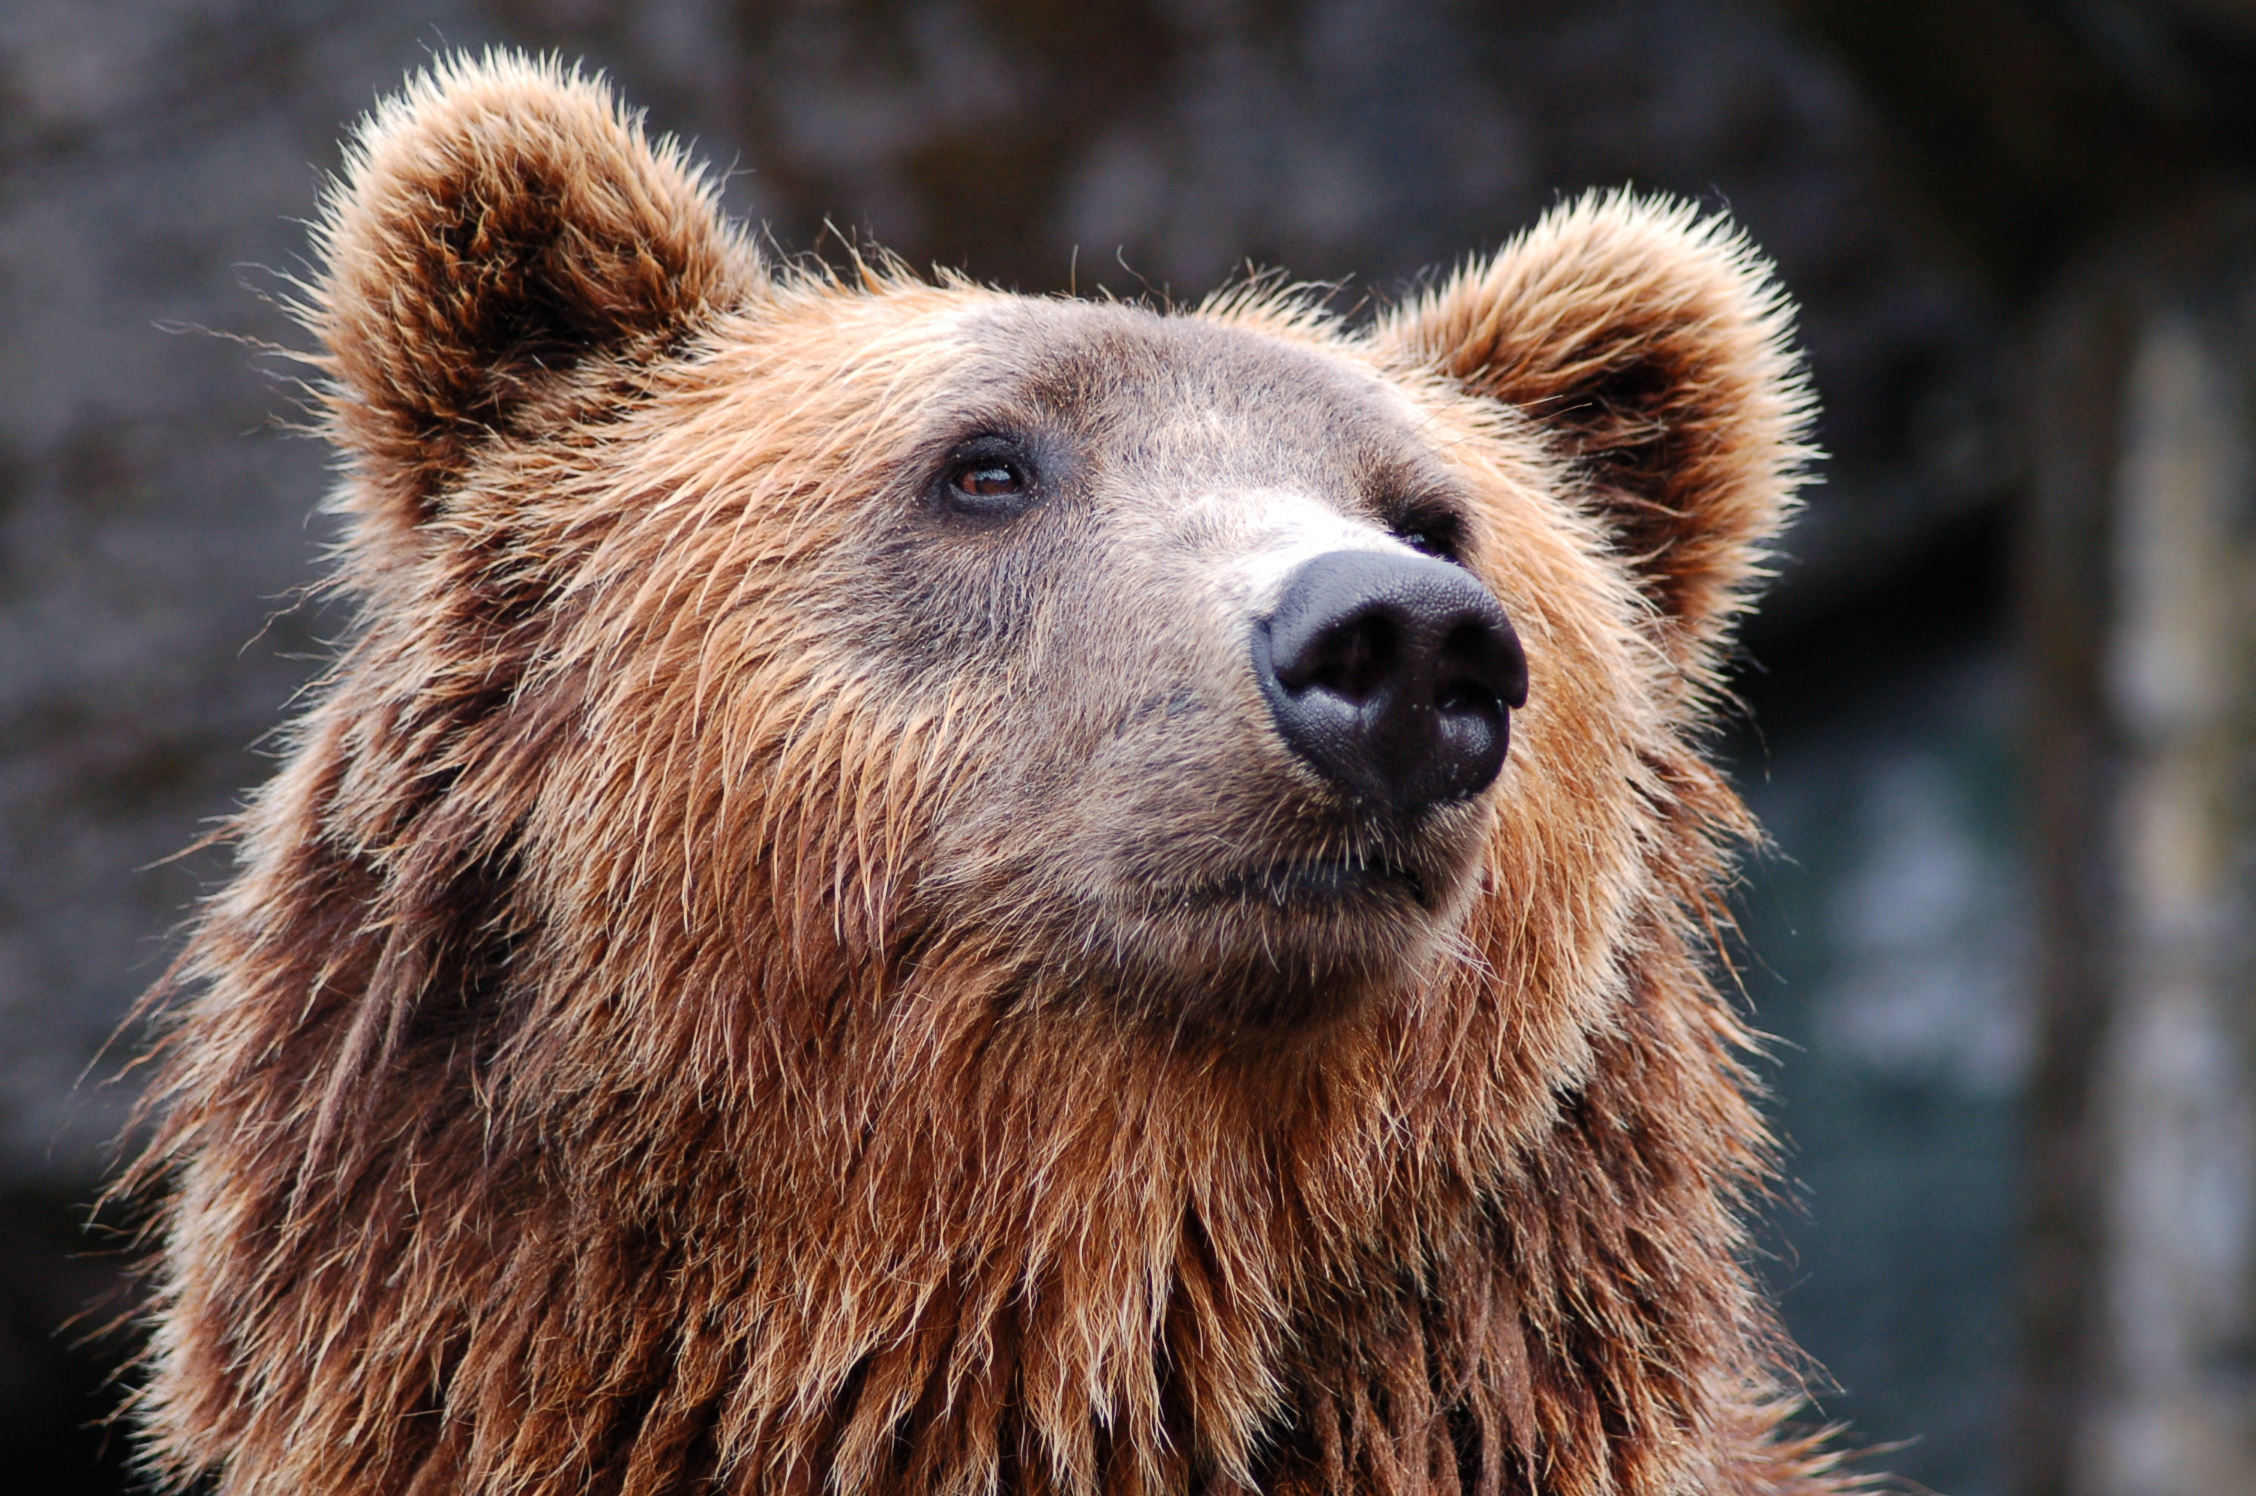 A brown bear looking majestically into the distance.